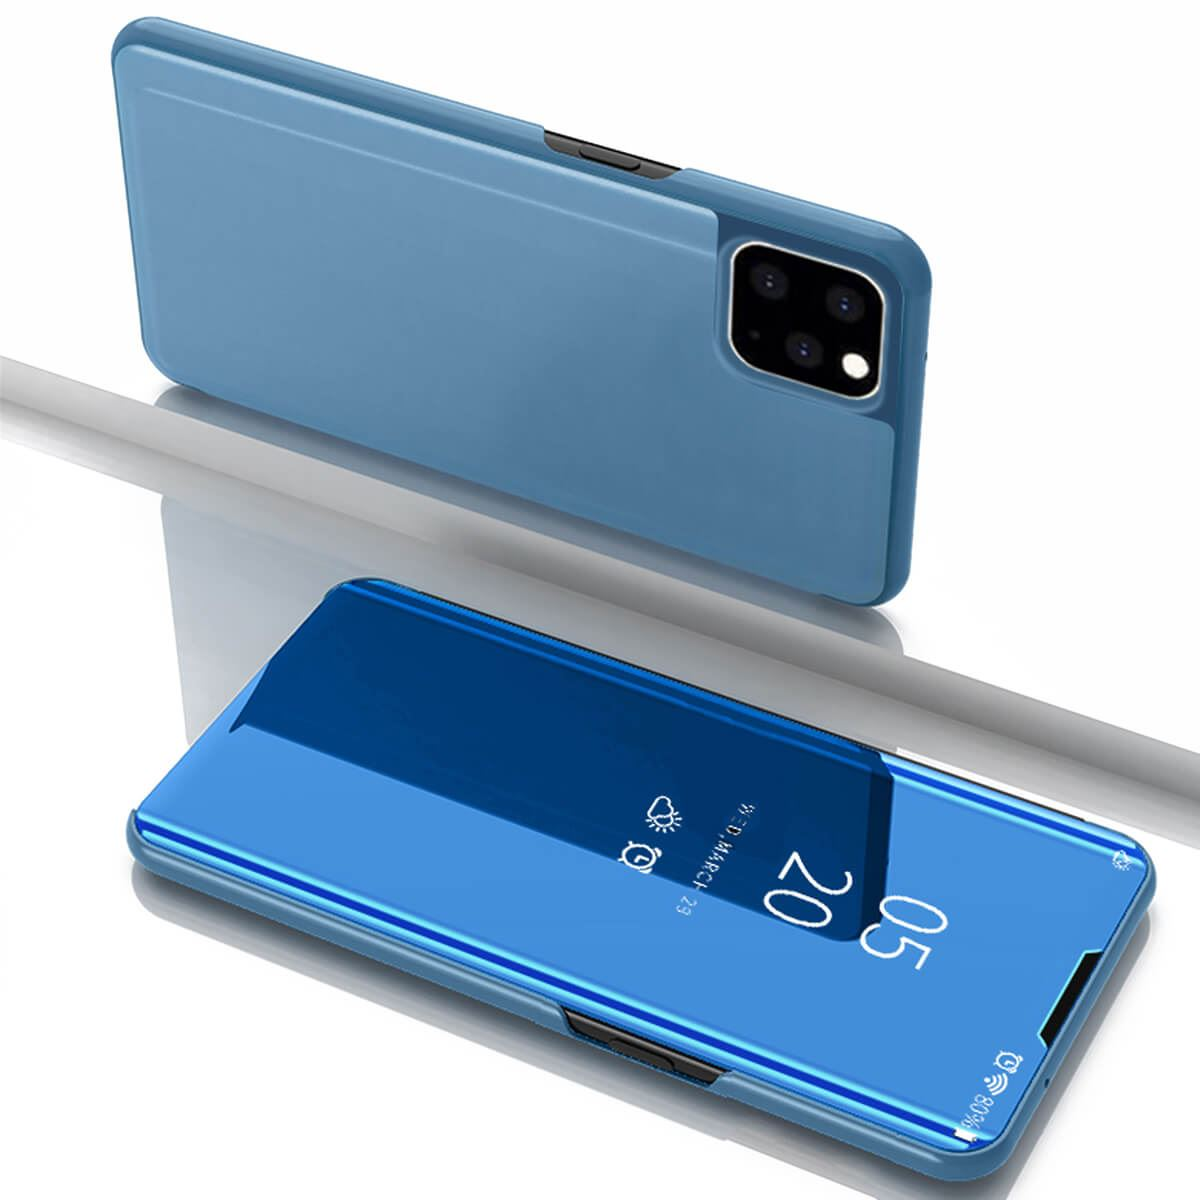 Apple-iPhone-6-6s-7-8-X-Plus-Smart-View-Mirror-Leather-Flip-Stand-Case-Cover thumbnail 10